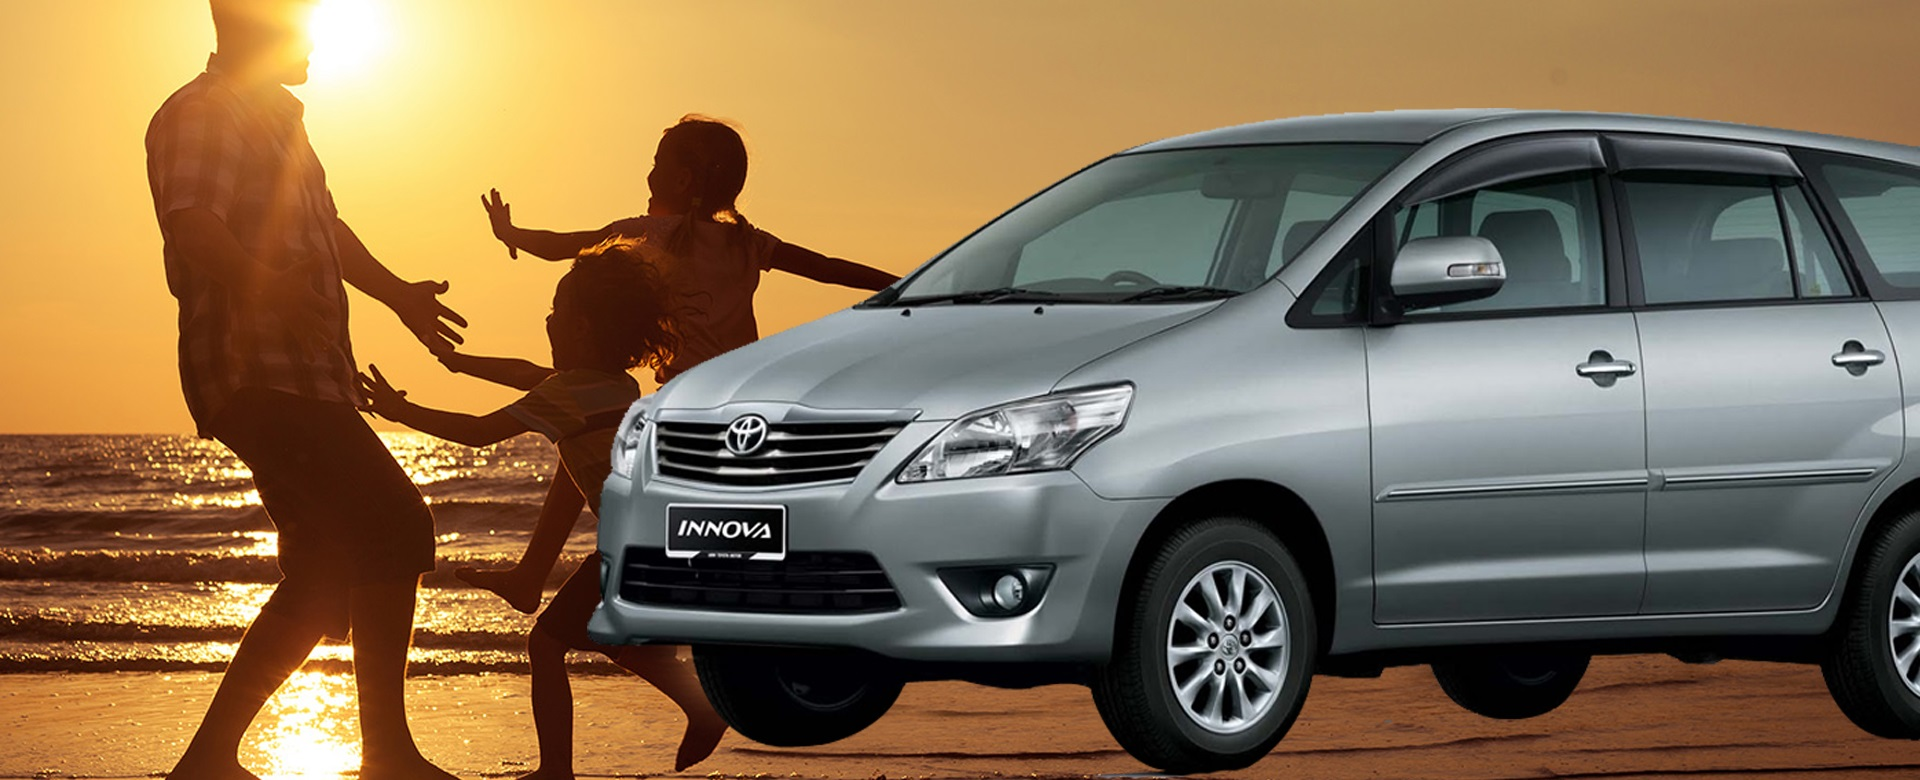 Oritaxi Cabs Service In Bhubaneswar Taxi Services New Kijang Innova 24 G A T Booking Fee Toyota